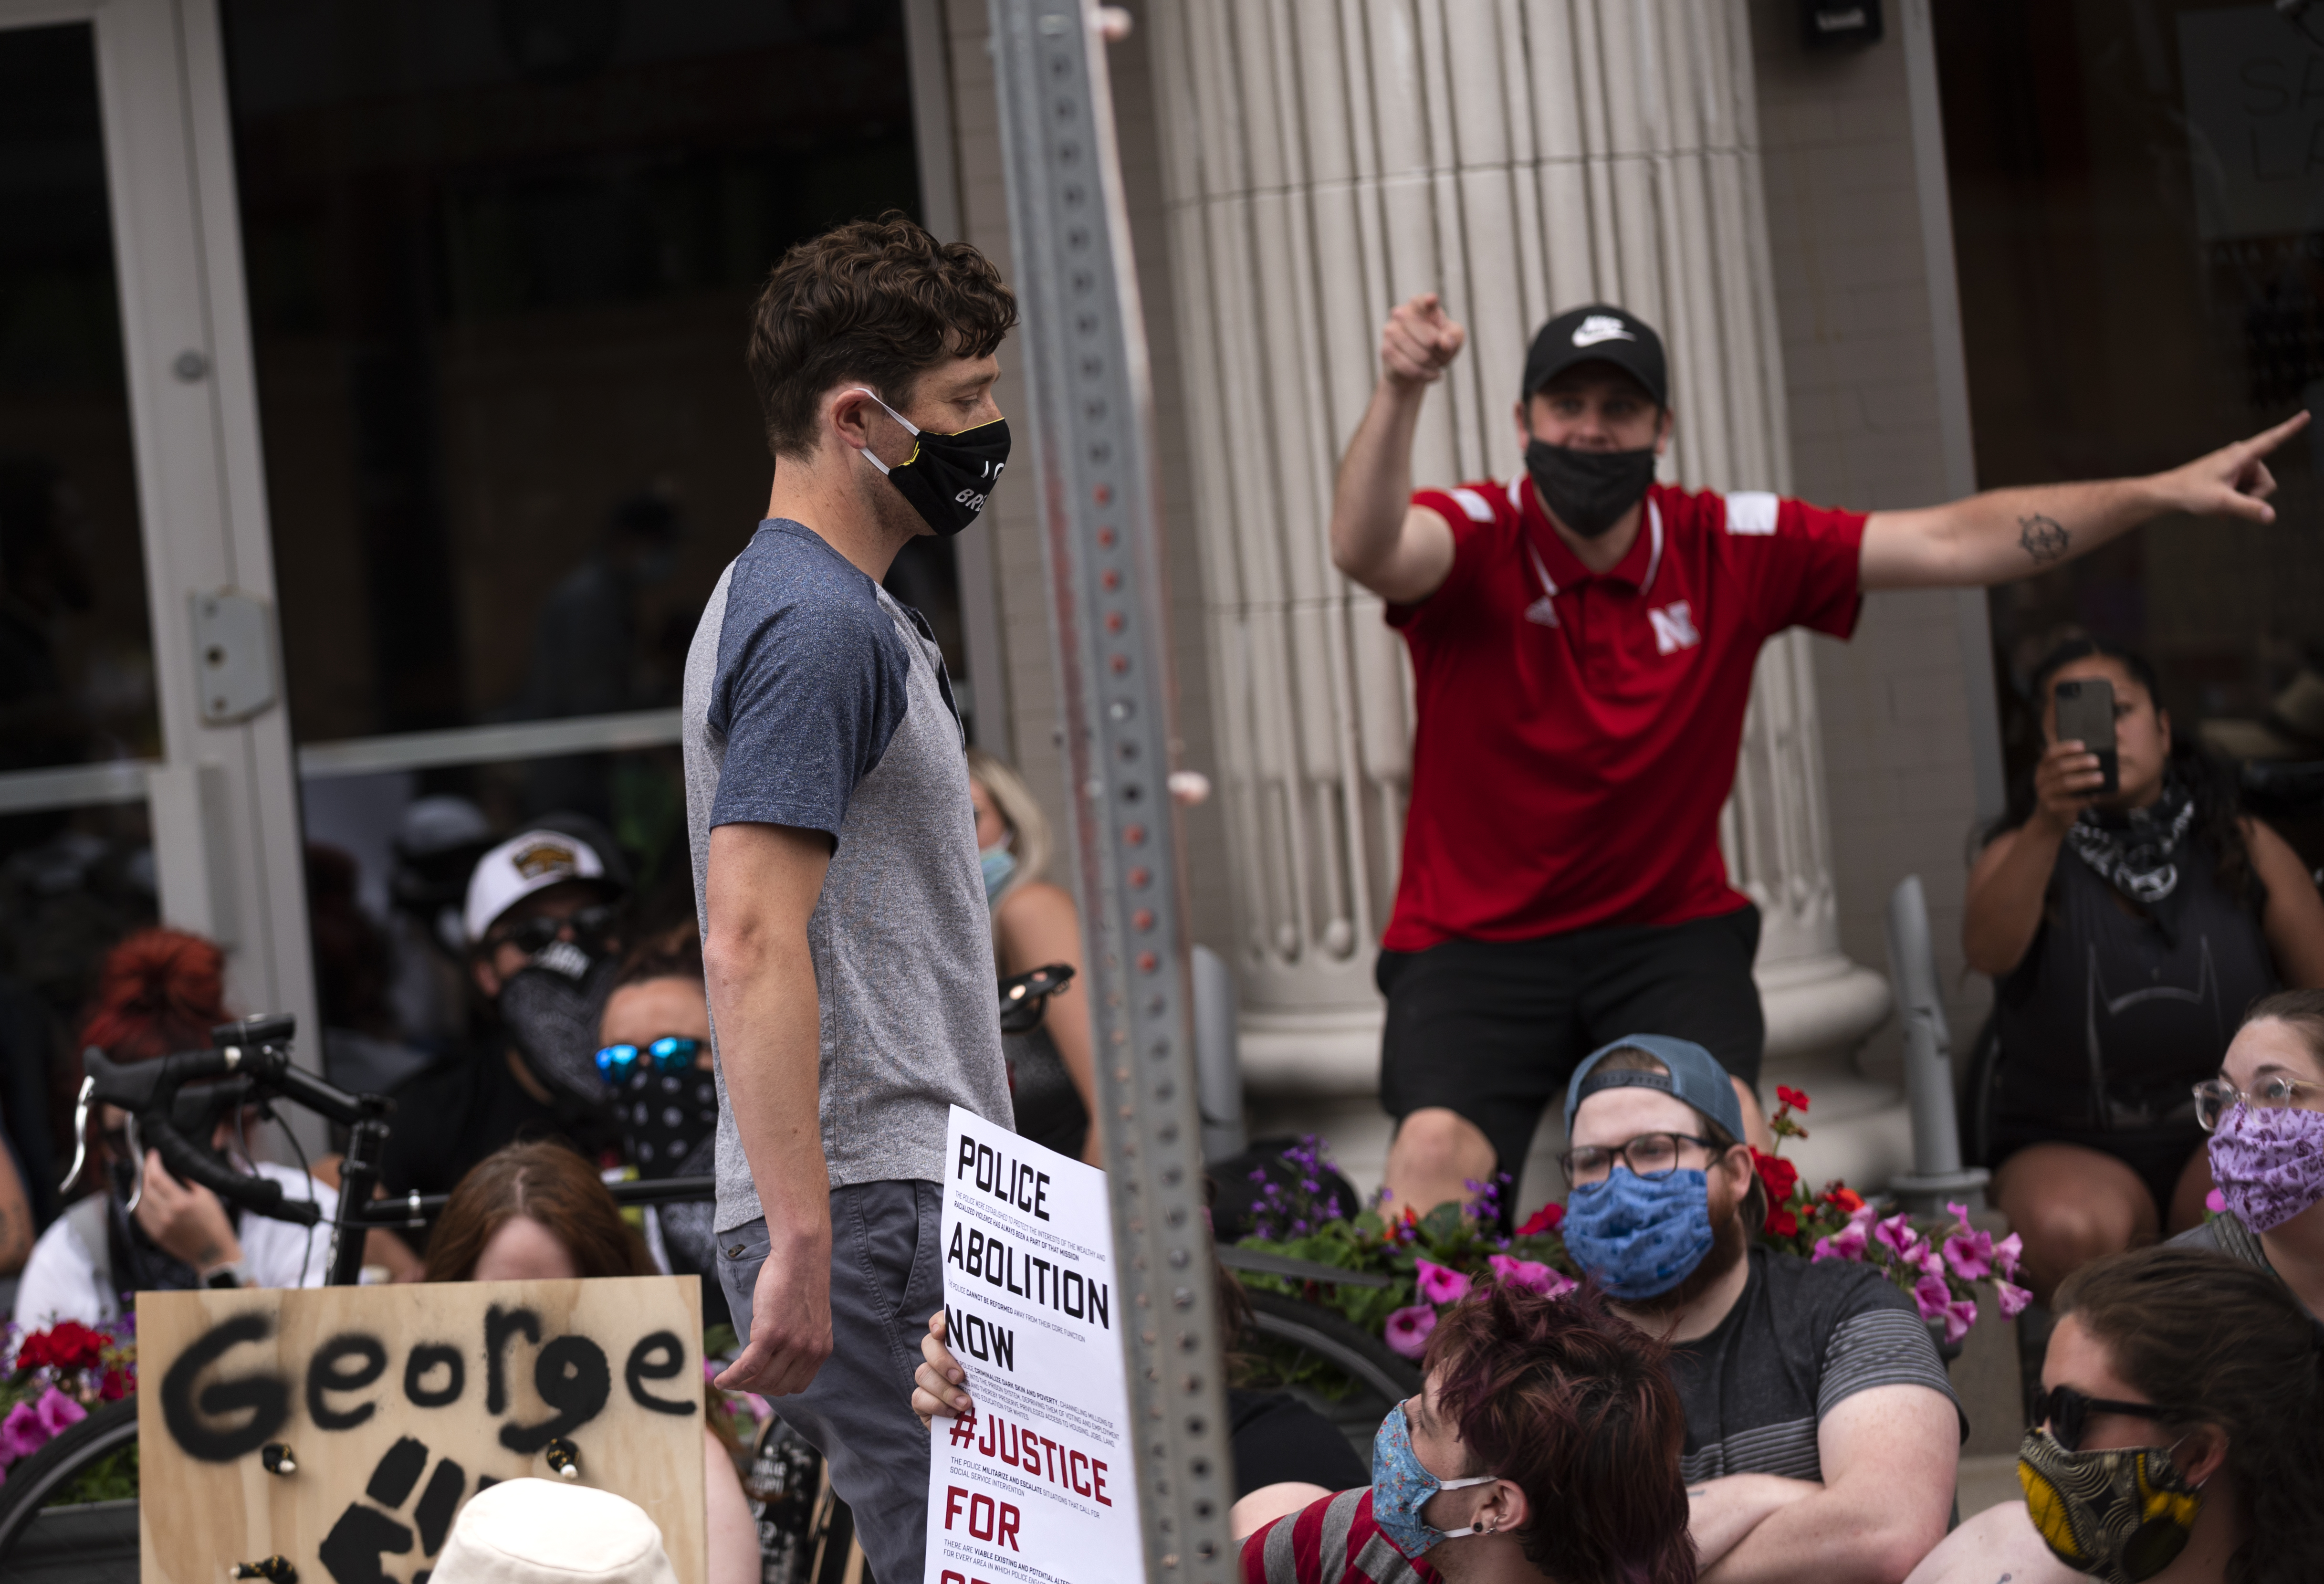 Minneapolis Mayor Jacob Frey leaves a demonstration calling for the Minneapolis Police Department to be defunded on June 6, 2020 in Minneapolis, Minnesota. Mayor Frey declined when he was asked if he would fully defund the police and was then asked to leave the protest. (Photo by Stephen Maturen/Getty Images)